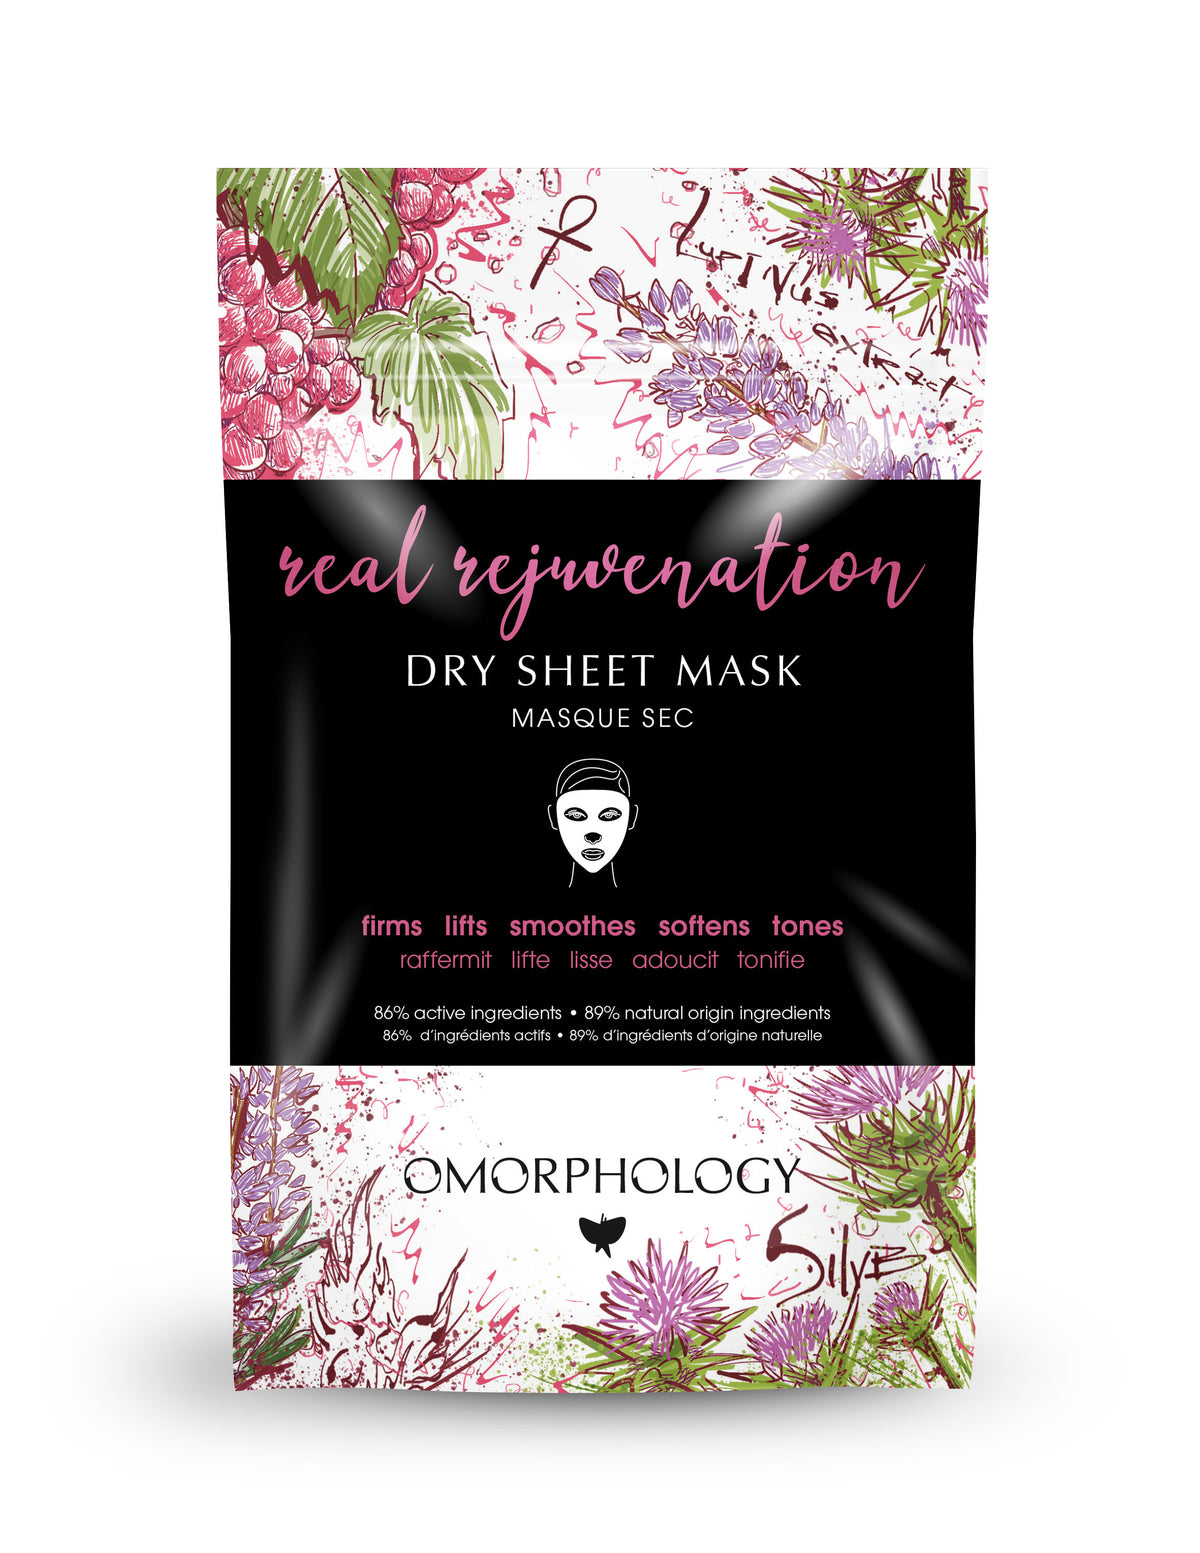 REAL REJUVENATION